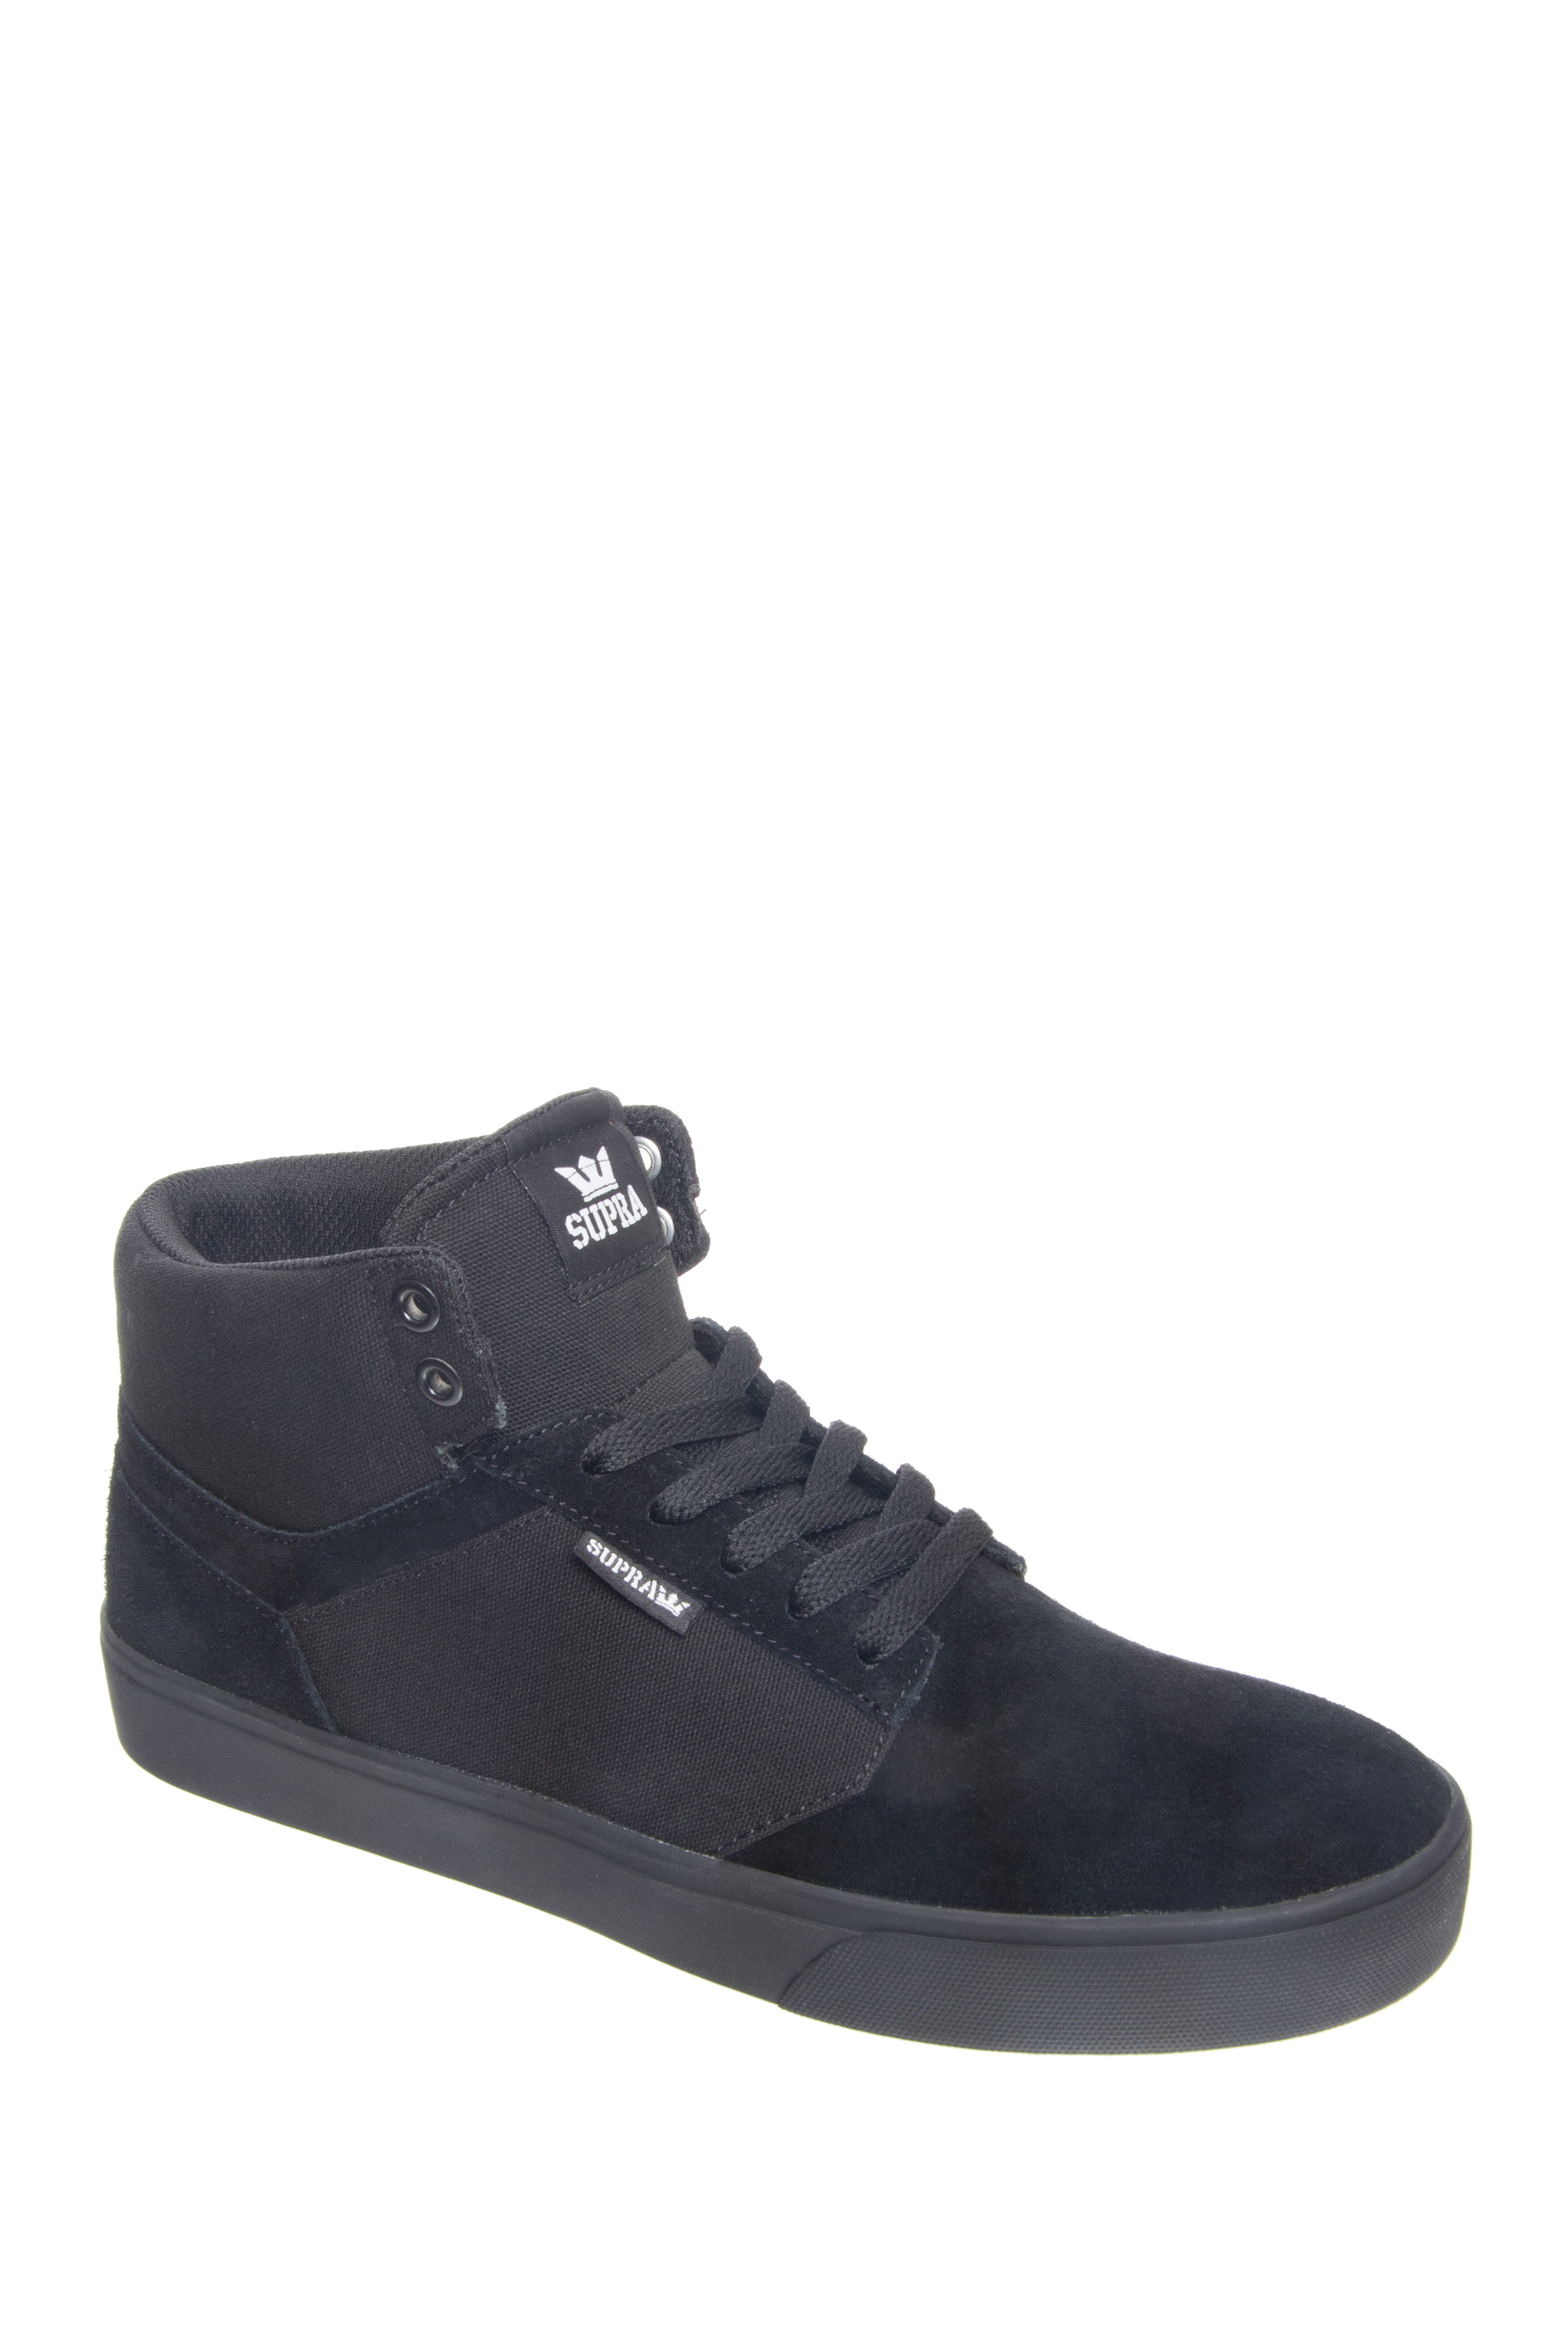 Supra Yorek High Top Sneakers - Black / Black - Black